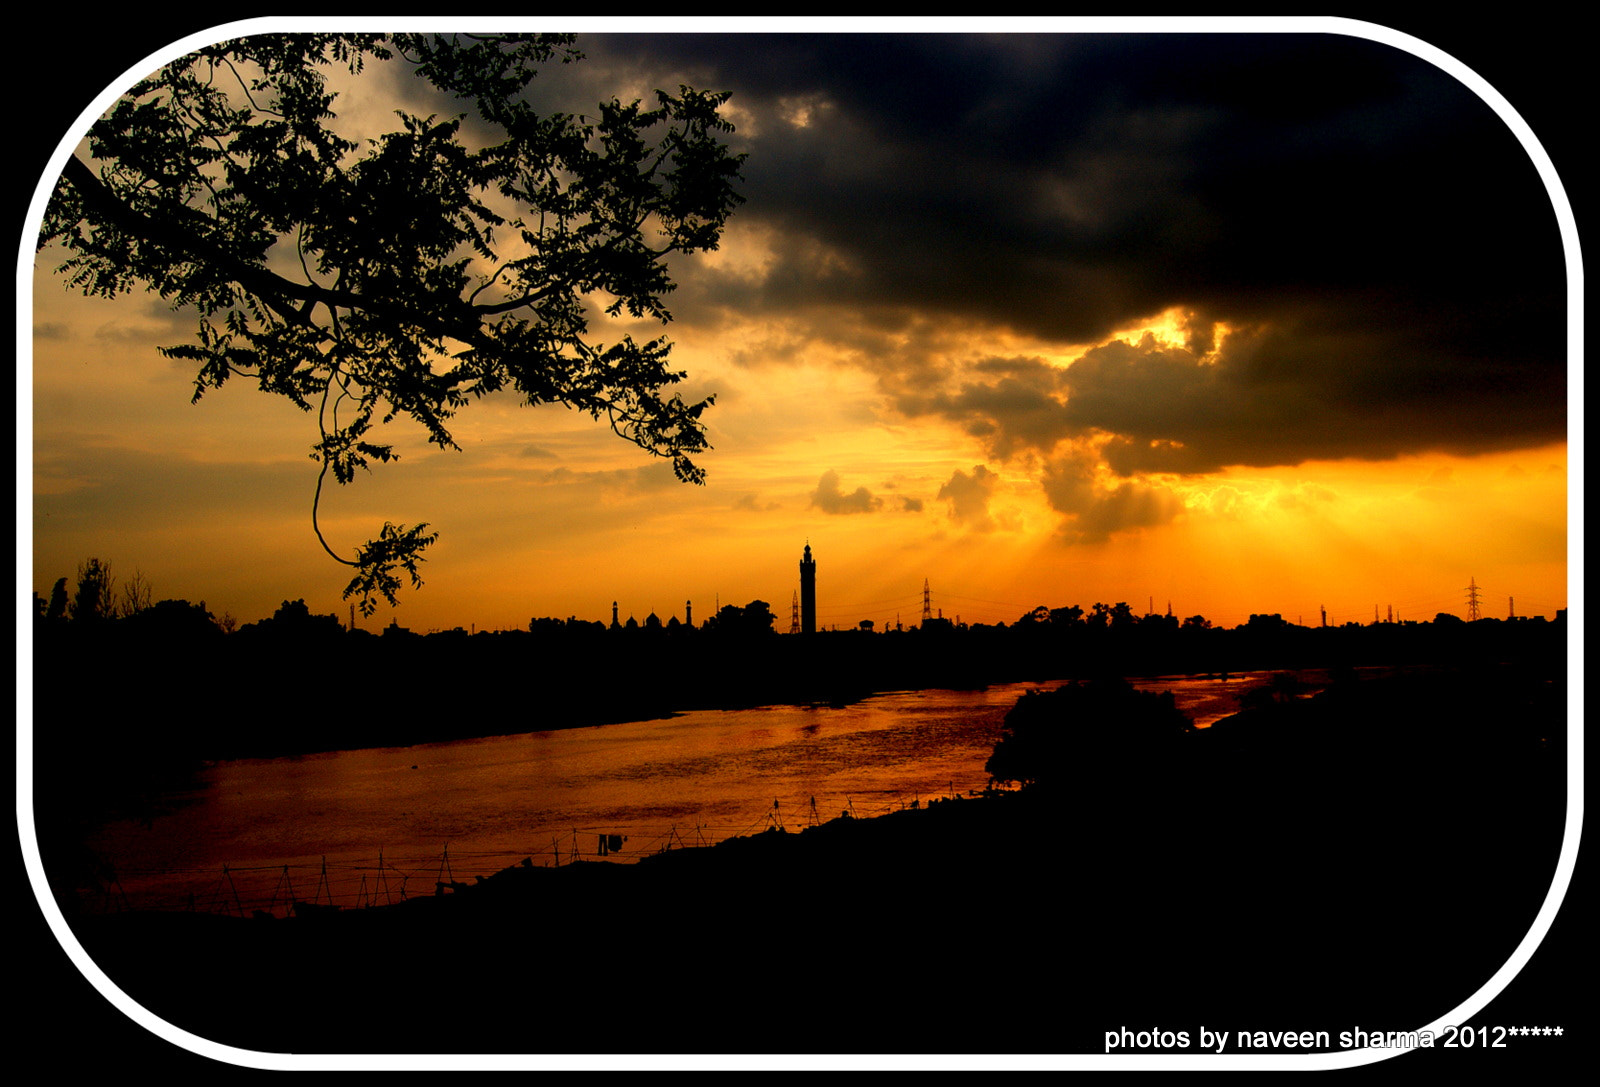 Photograph GLAMROUS SUNSETTING OVER RIVER GOMTI by naveen sharma on 500px